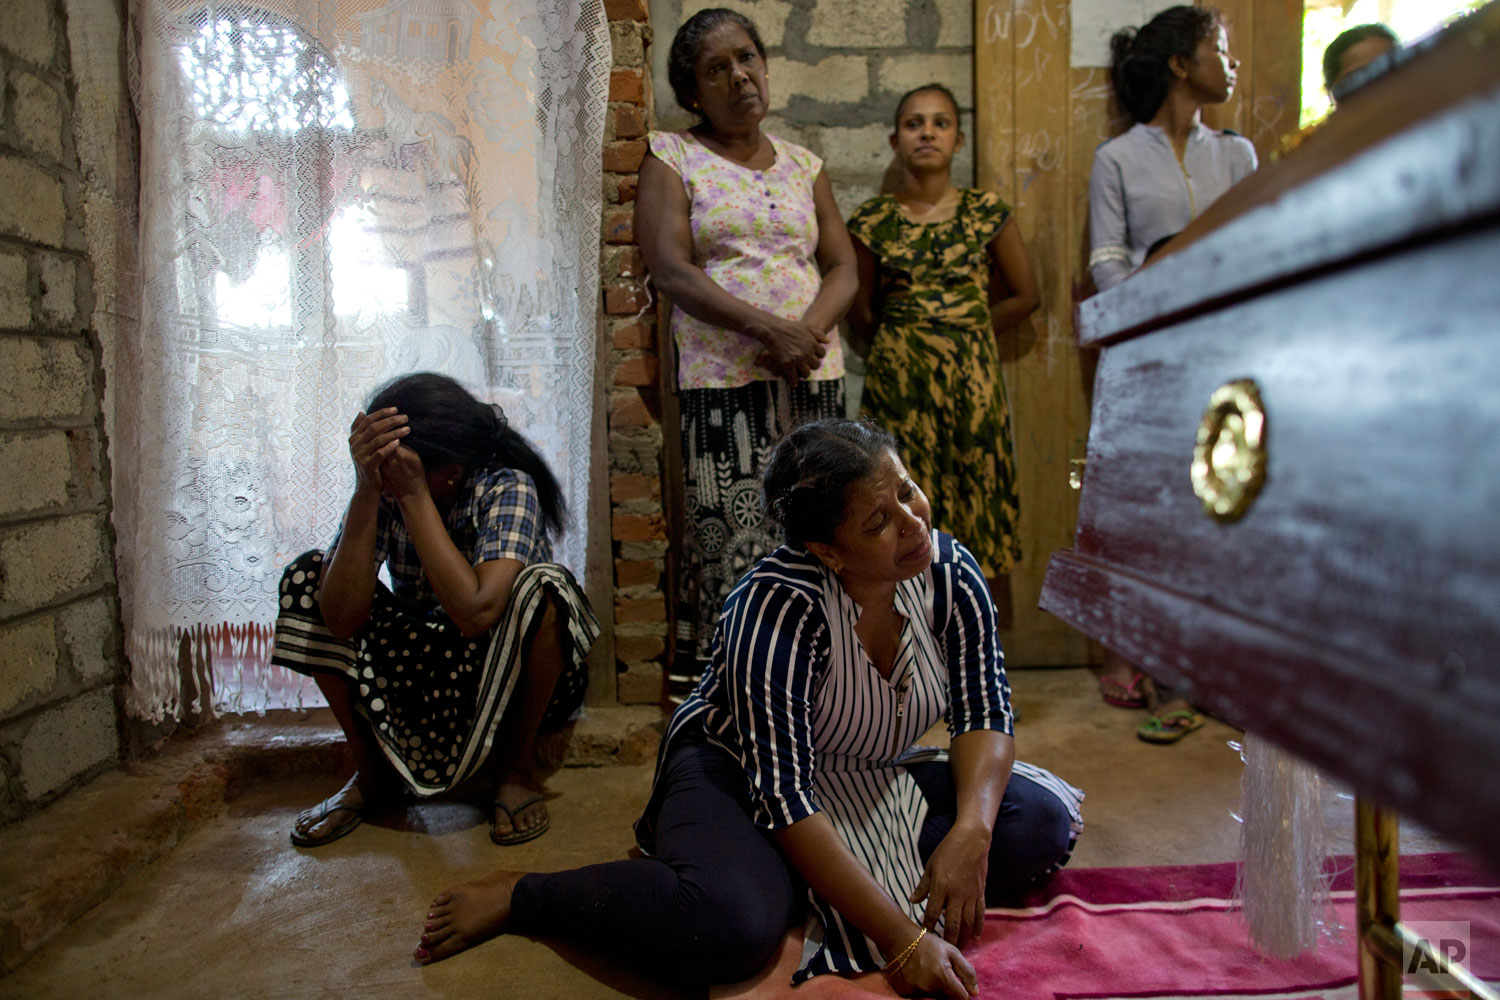 Relatives weep at the coffin with the remains of 12-year Sneha Savindi, who was a victim of Easter Sunday bomb blast at St. Sebastian Church reach home, Monday, April 22, 2019 in Negombo, Sri Lanka. The Easter Sunday bombings of churches, luxury hotels and other sites was Sri Lanka's deadliest violence since a devastating civil war in the South Asian island nation ended a decade ago. (AP Photo/Gemunu Amarasinghe)